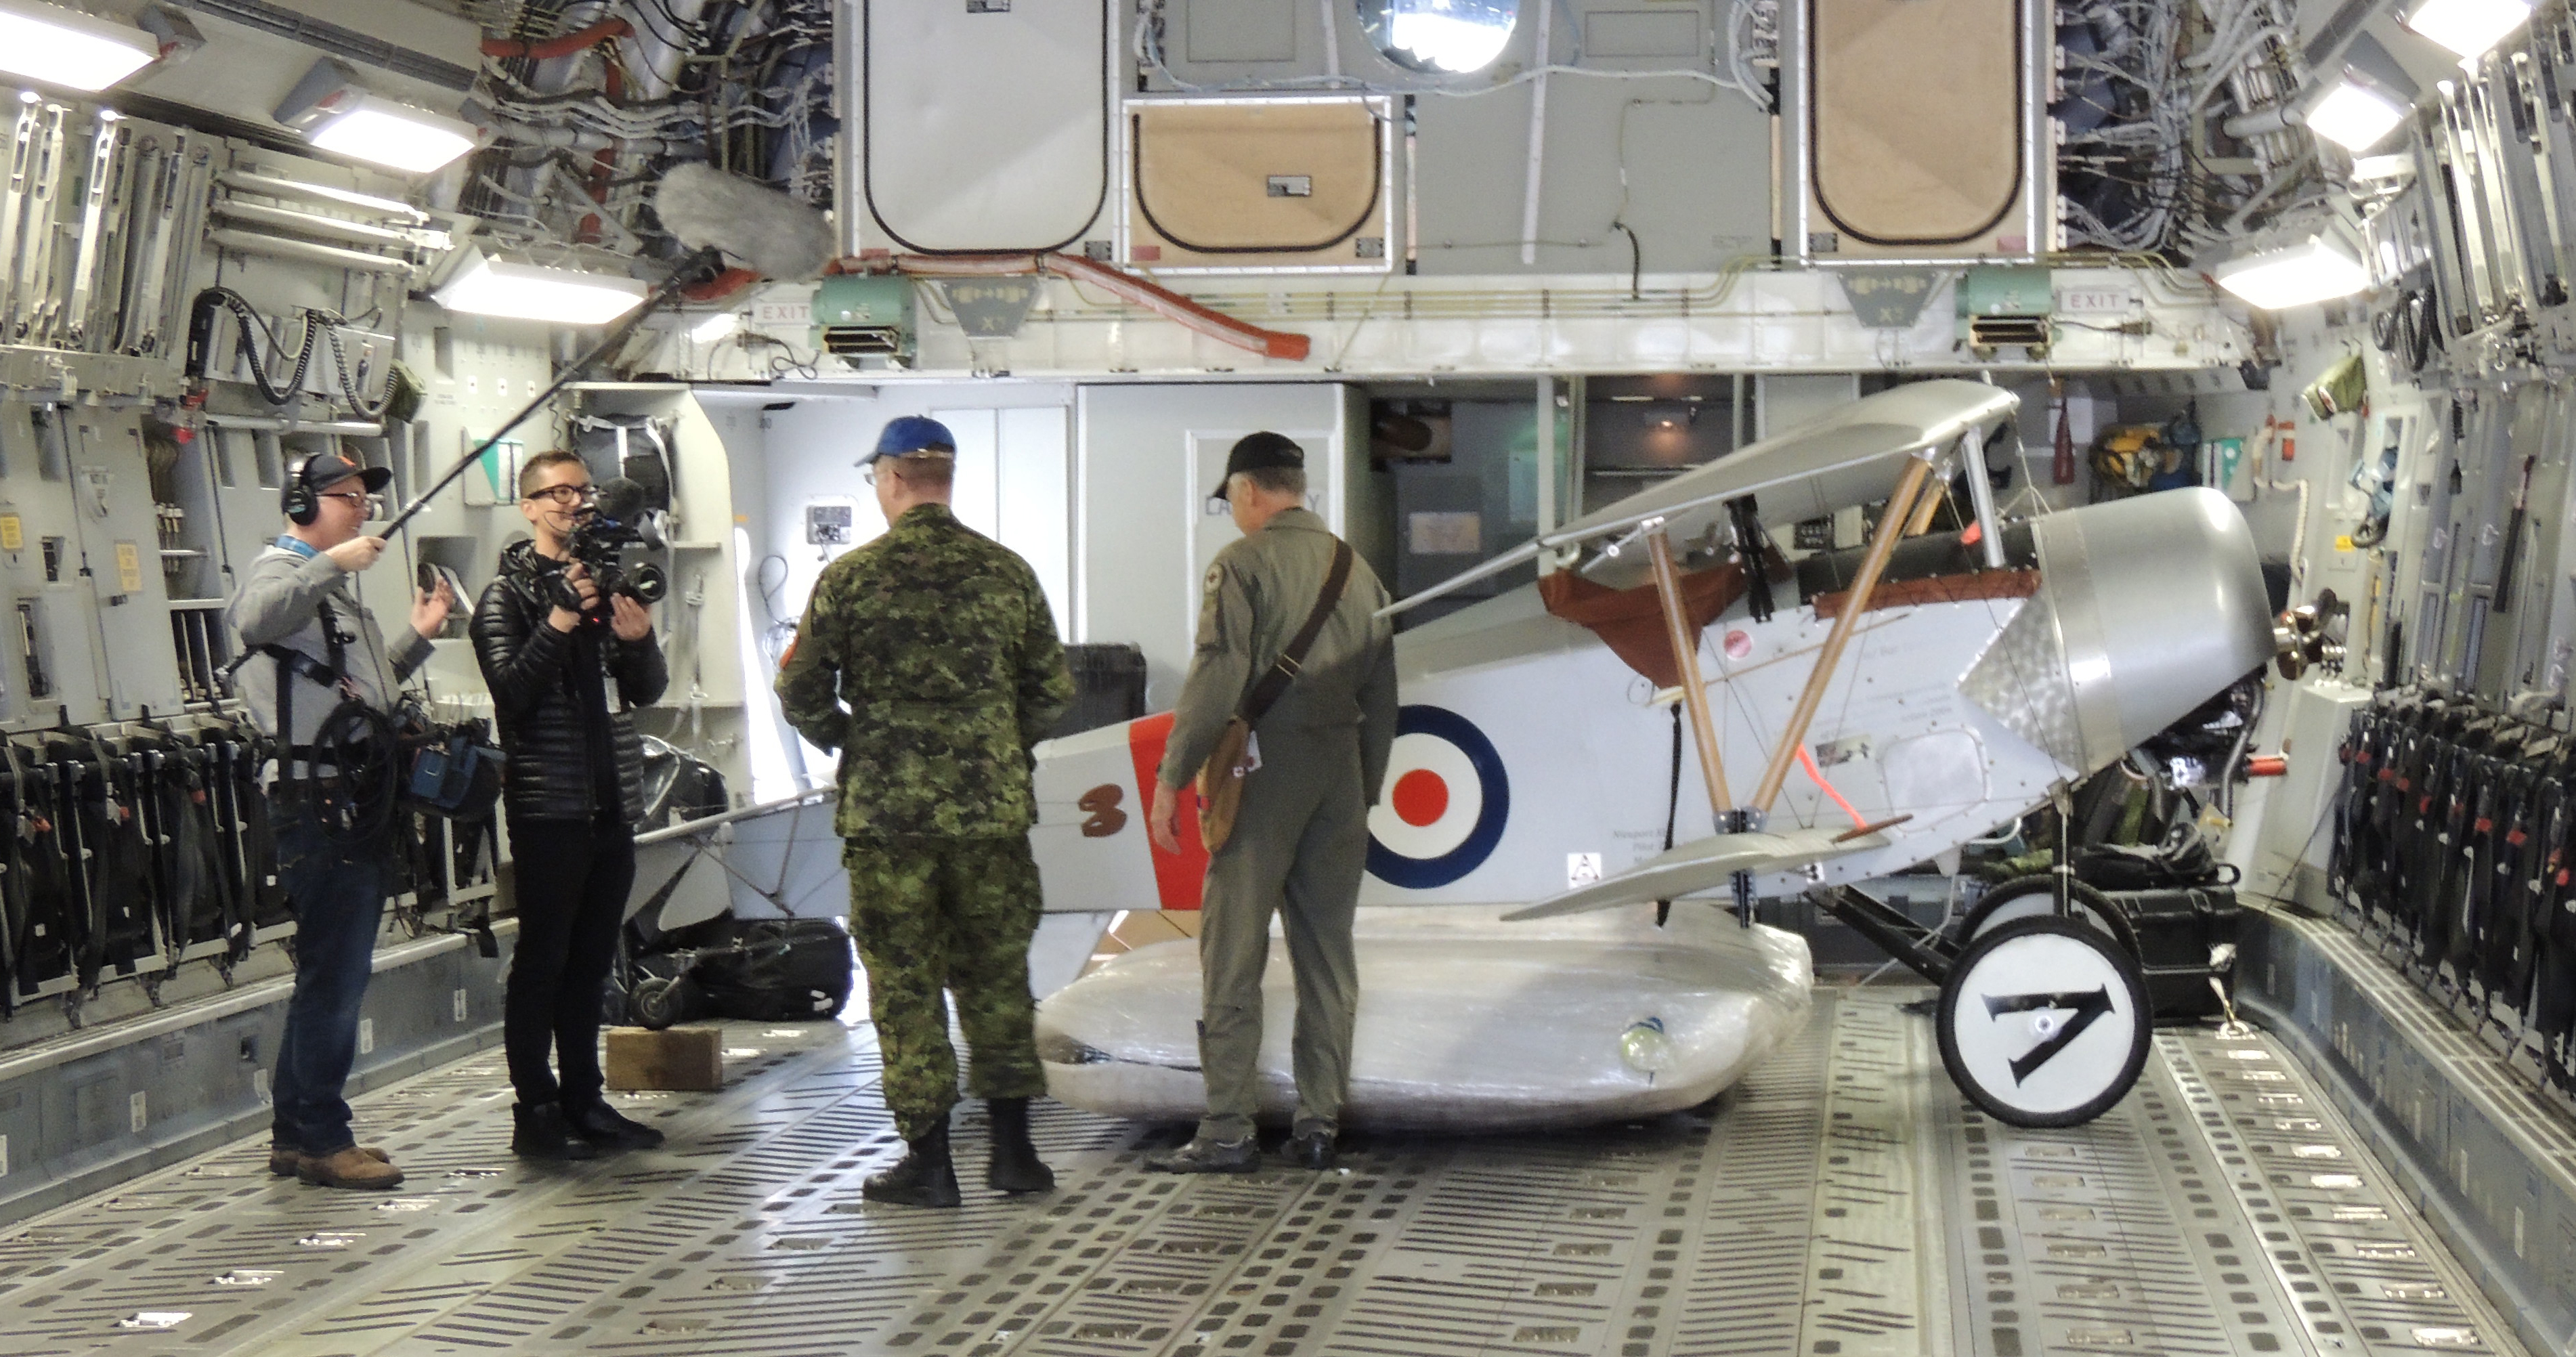 A Nieuport XI rests inside the CC-177 Globemaster III from 429 Transport Squadron, located at 8 Wing Trenton, Ontario, as crew speak with reporters. PHOTO: Major Holly-Anne Brown